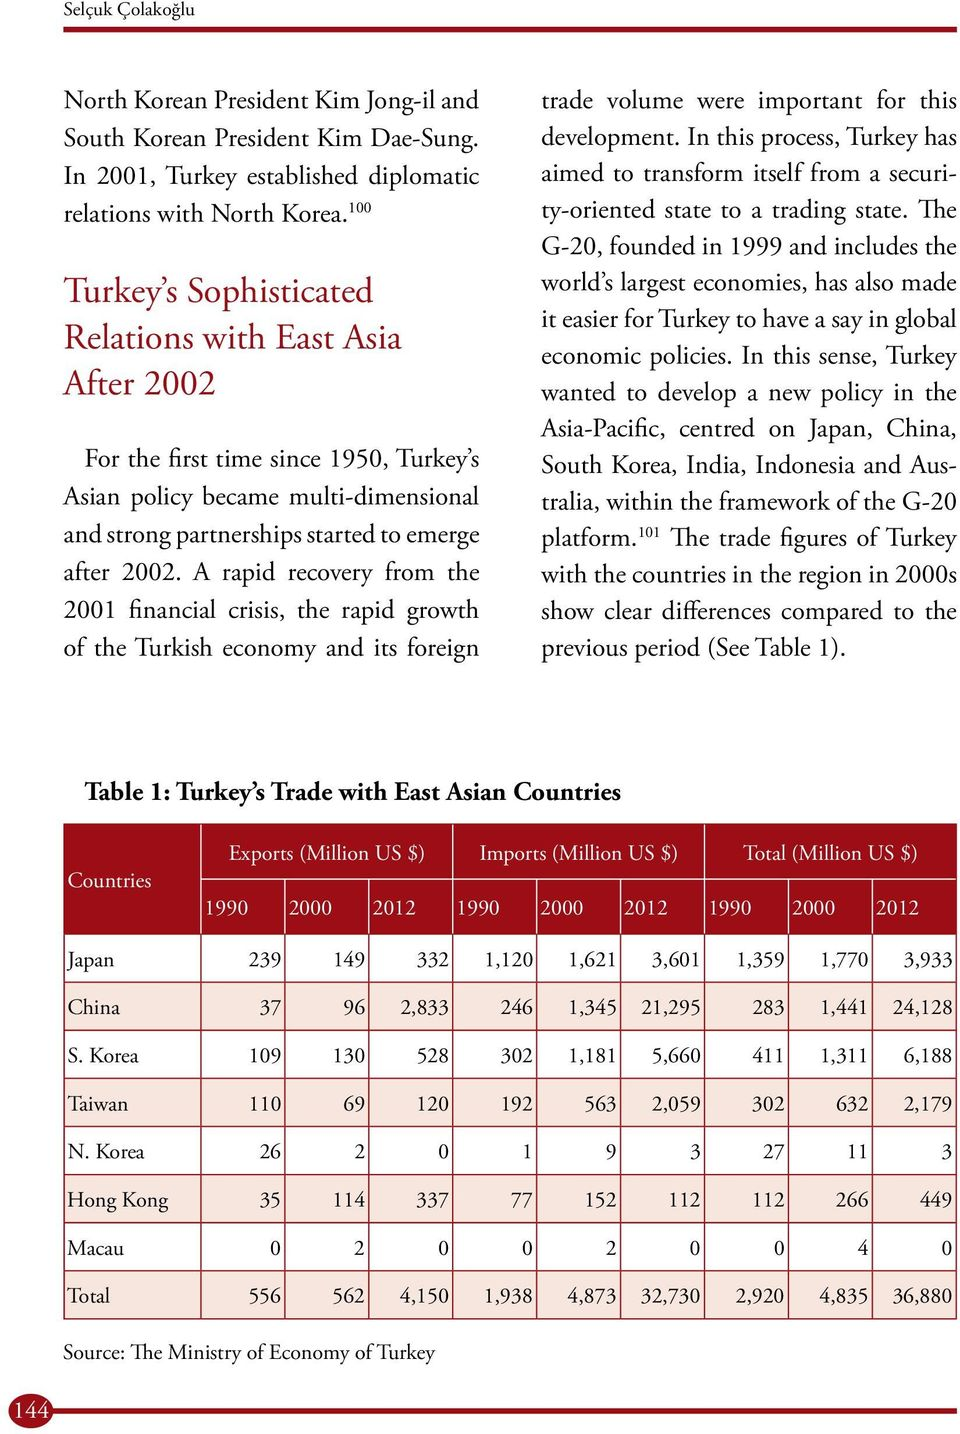 A rapid recovery from the 2001 financial crisis, the rapid growth of the Turkish economy and its foreign trade volume were important for this development.